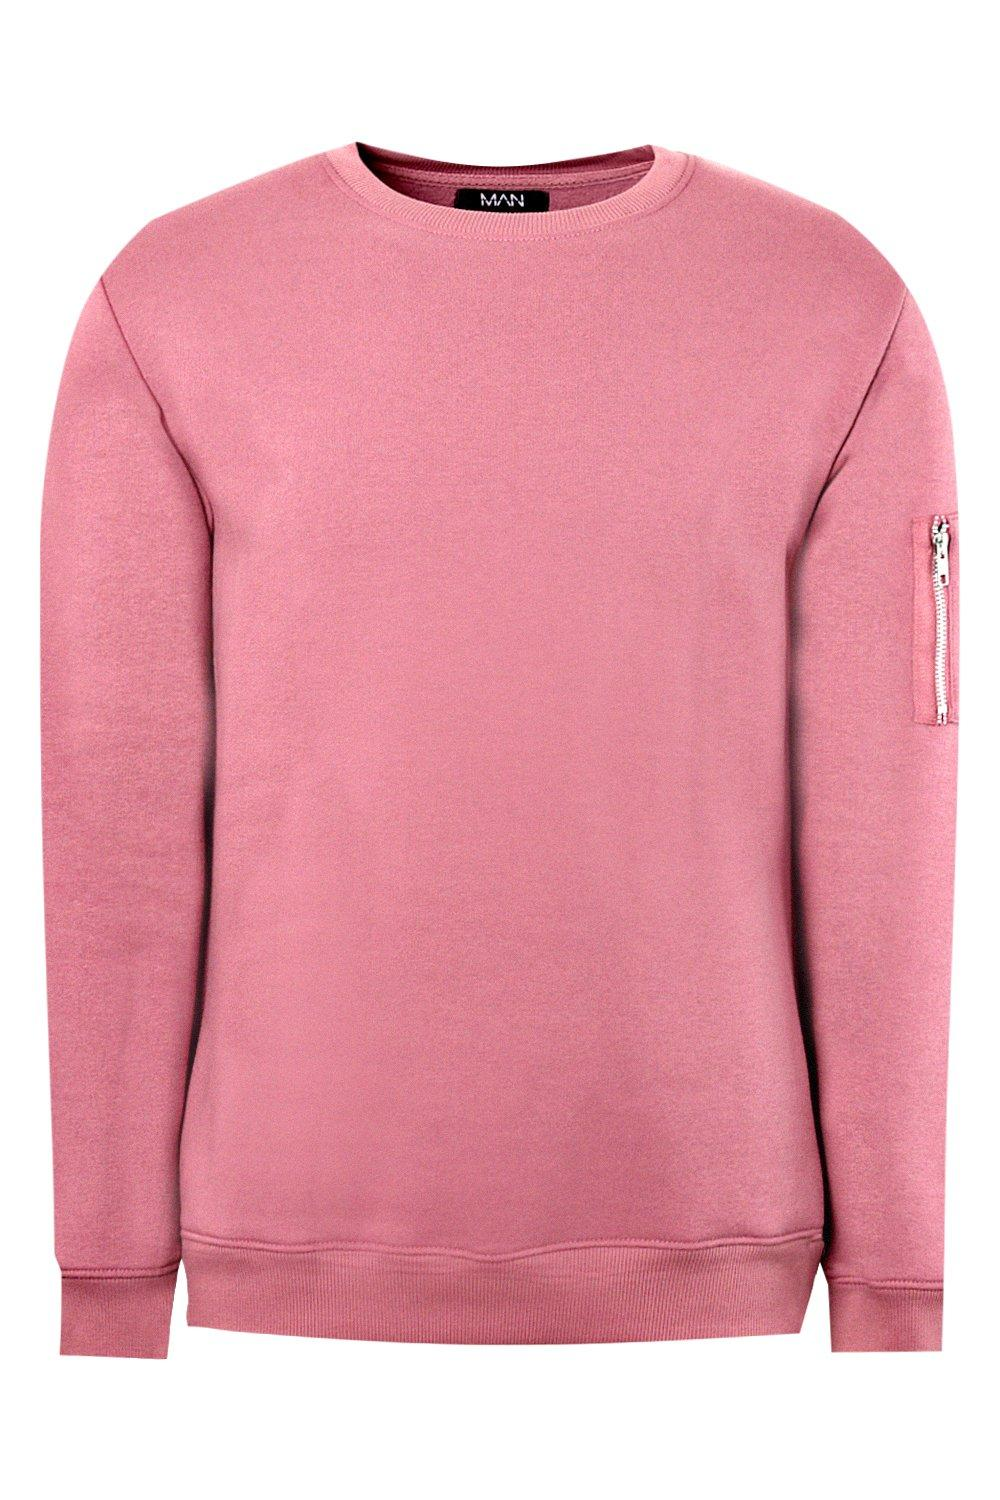 boohooMAN cedar MA1 Pocket Detail Fleece Sweatshirt